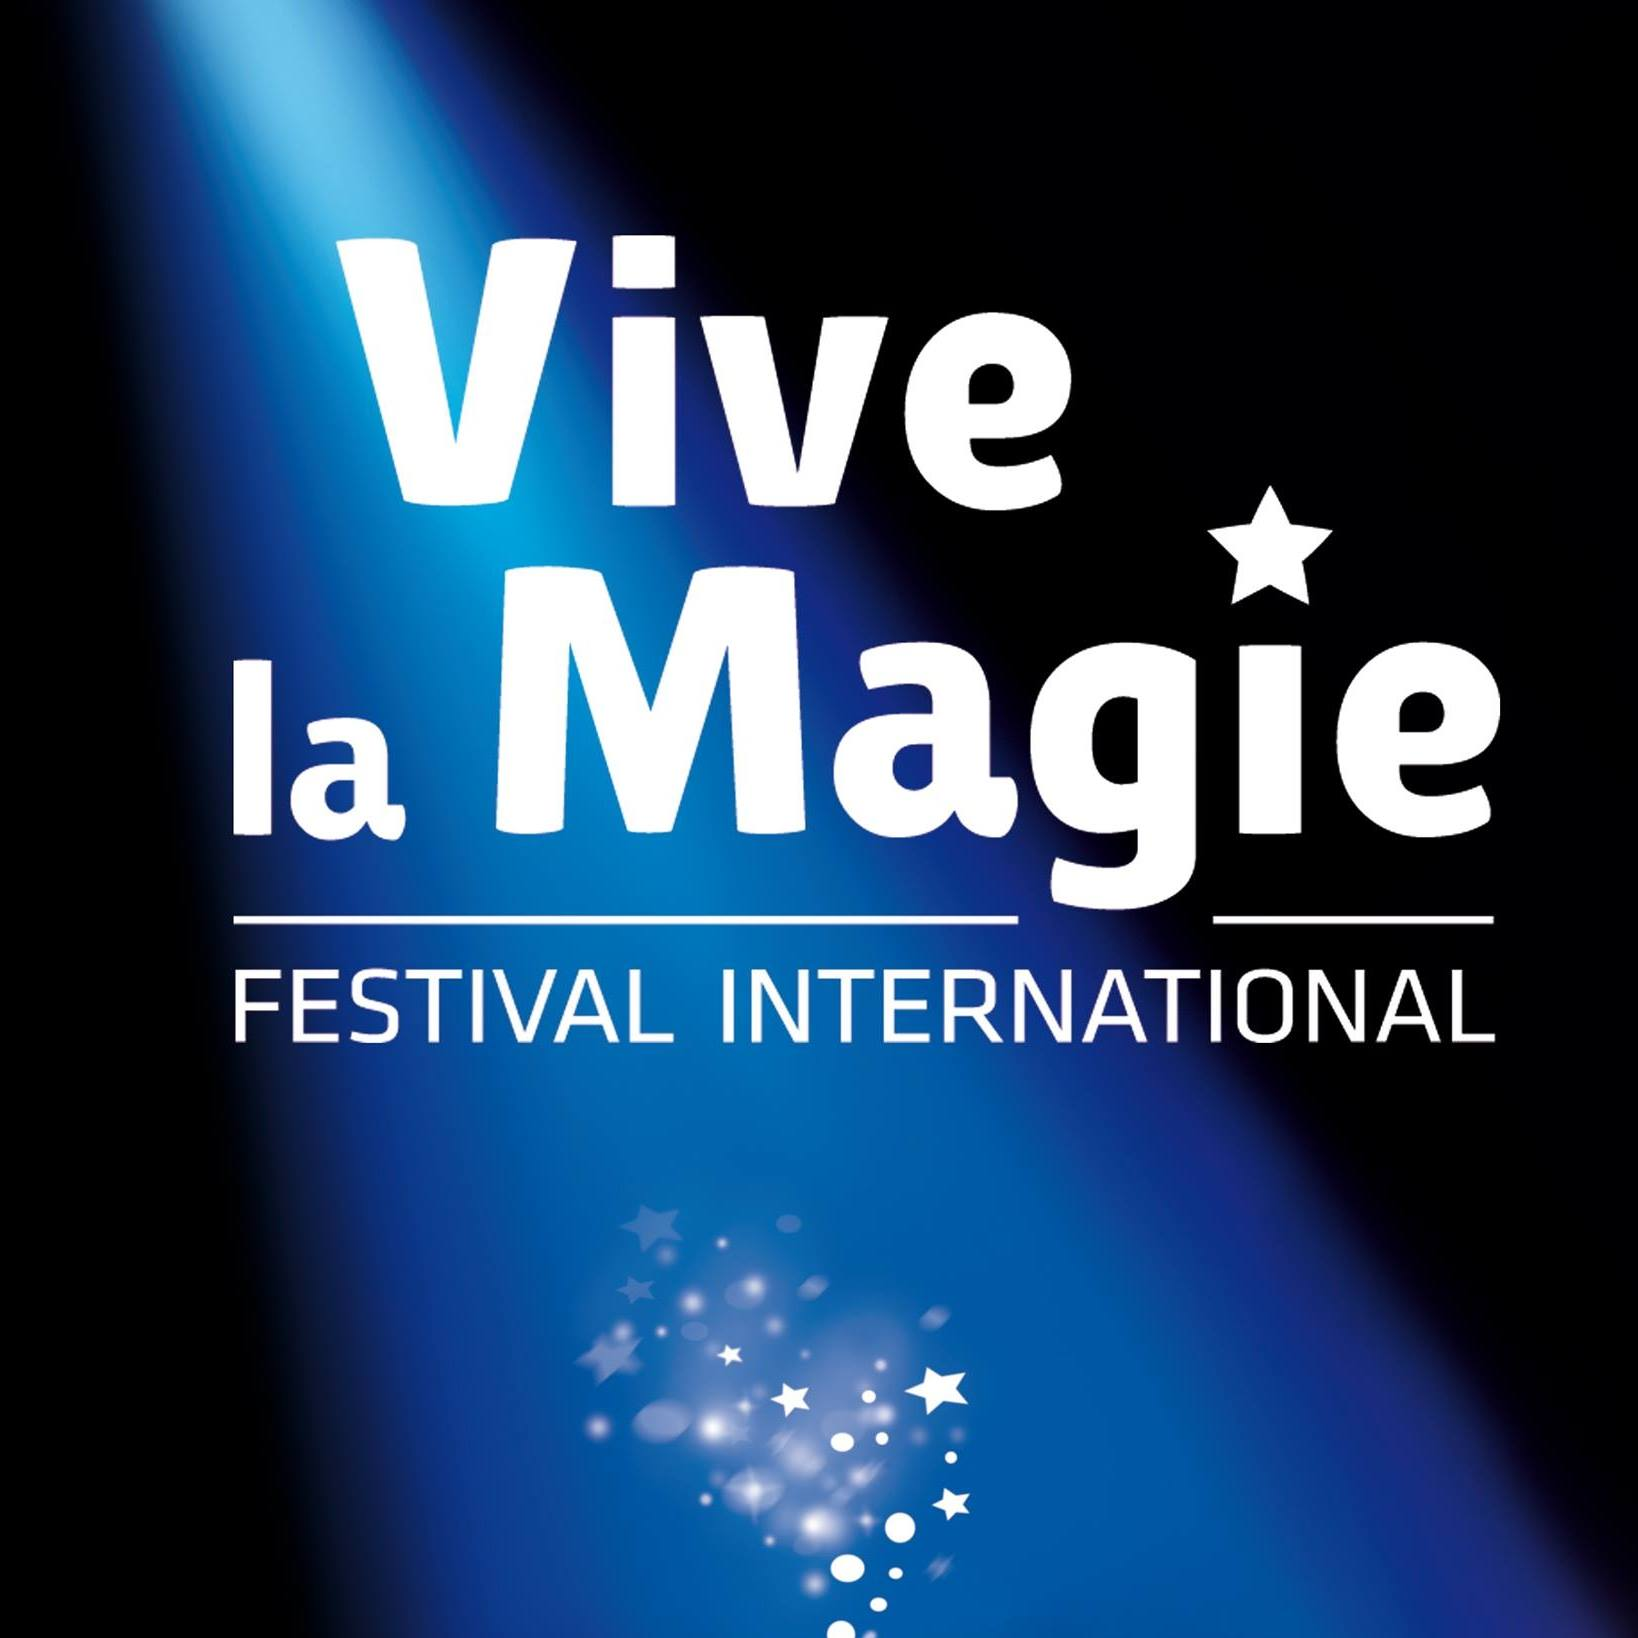 Festival International Vive La Magie at Bourse du Travail Tickets